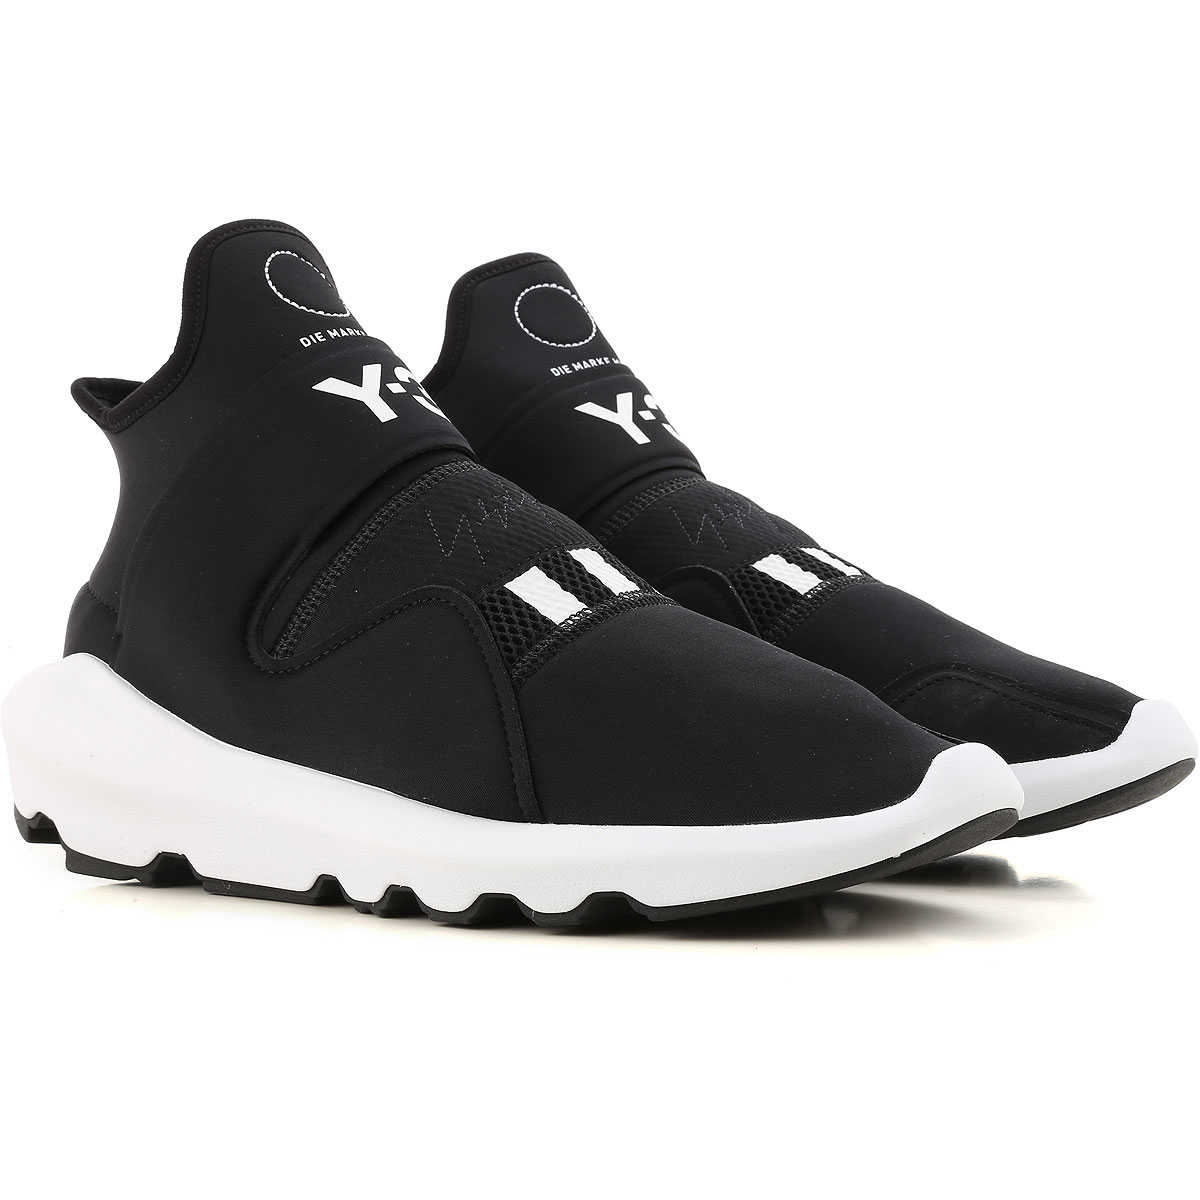 Adidas Mens Shoes On Sale